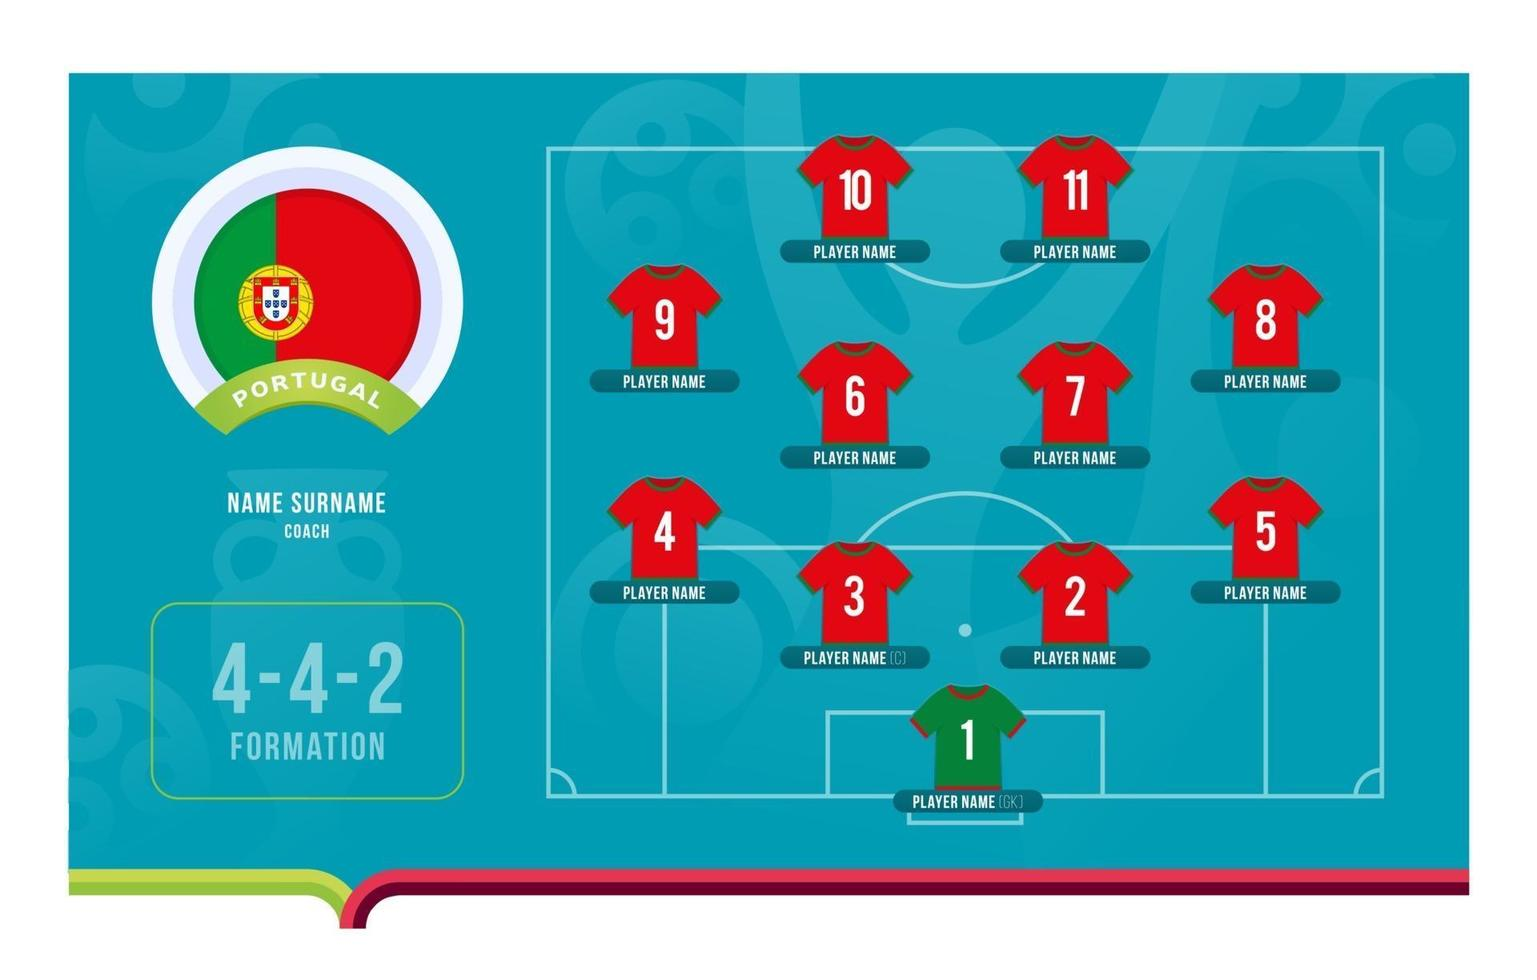 Portugal line-up Football tournament final stage vector illustration